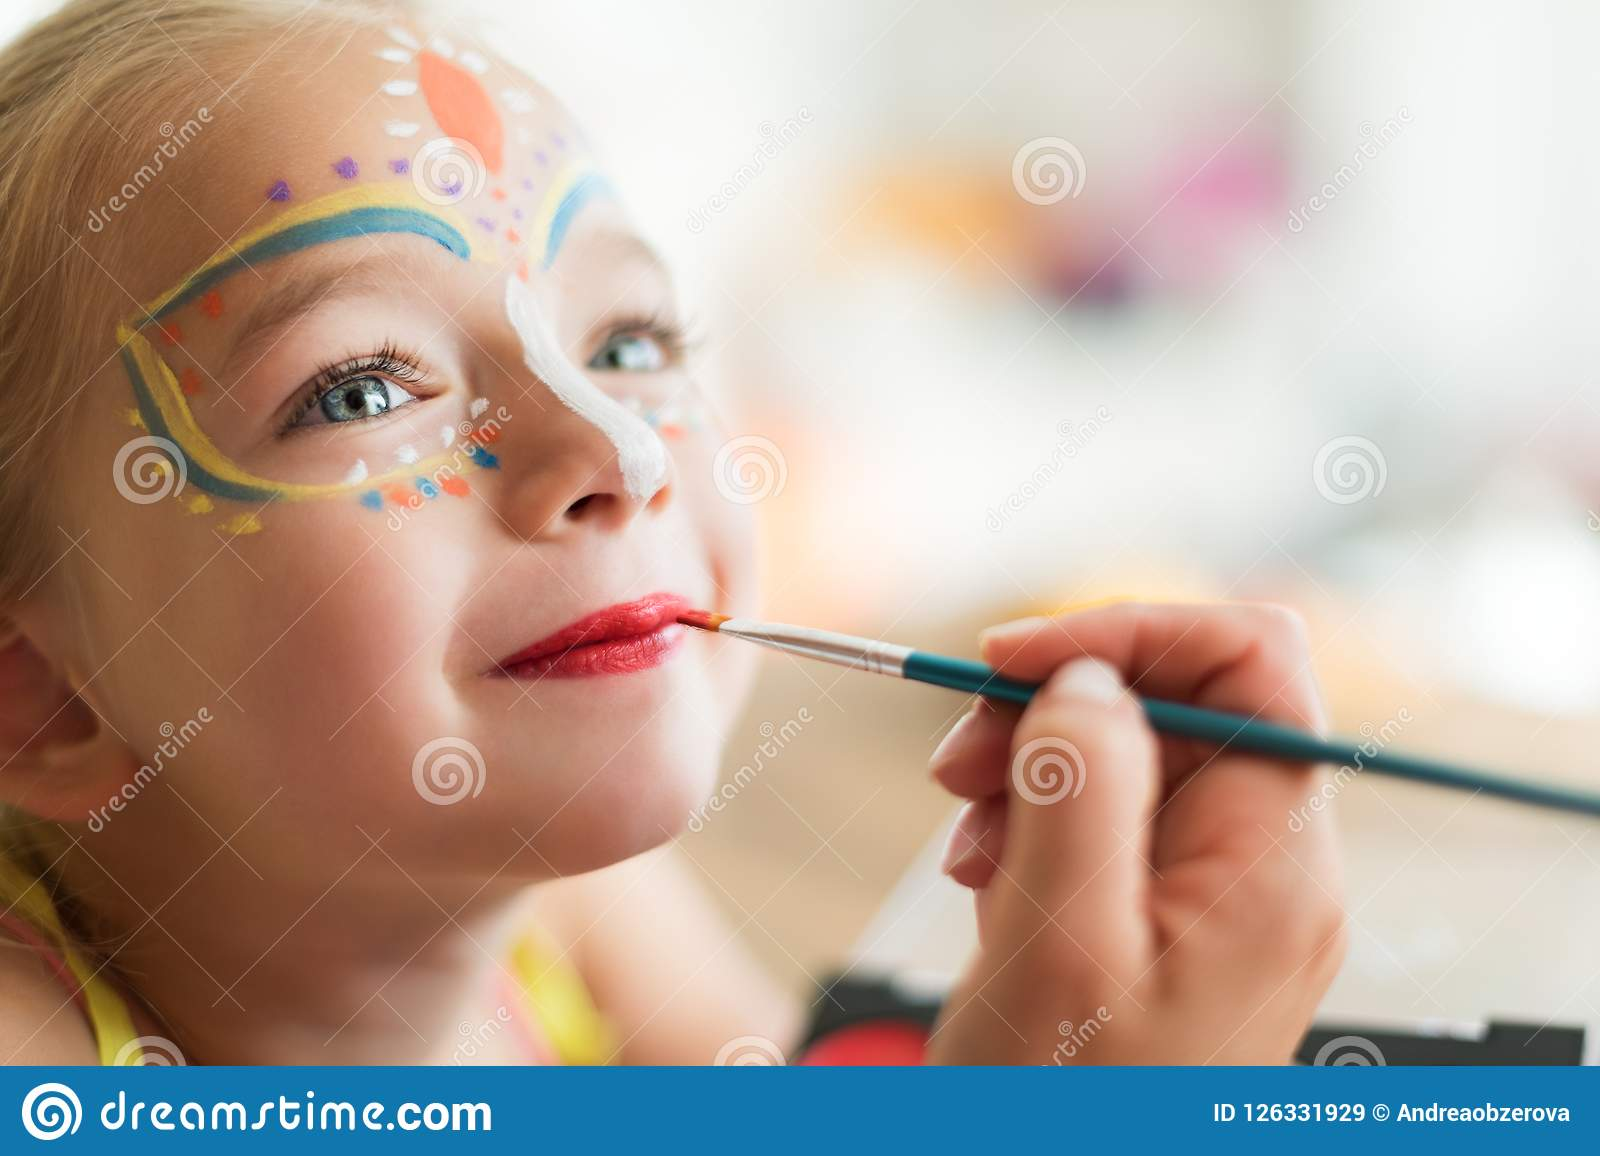 Cute little girl having her face painted for Halloween party. Halloween or carnival family lifestyle background. Face painting.